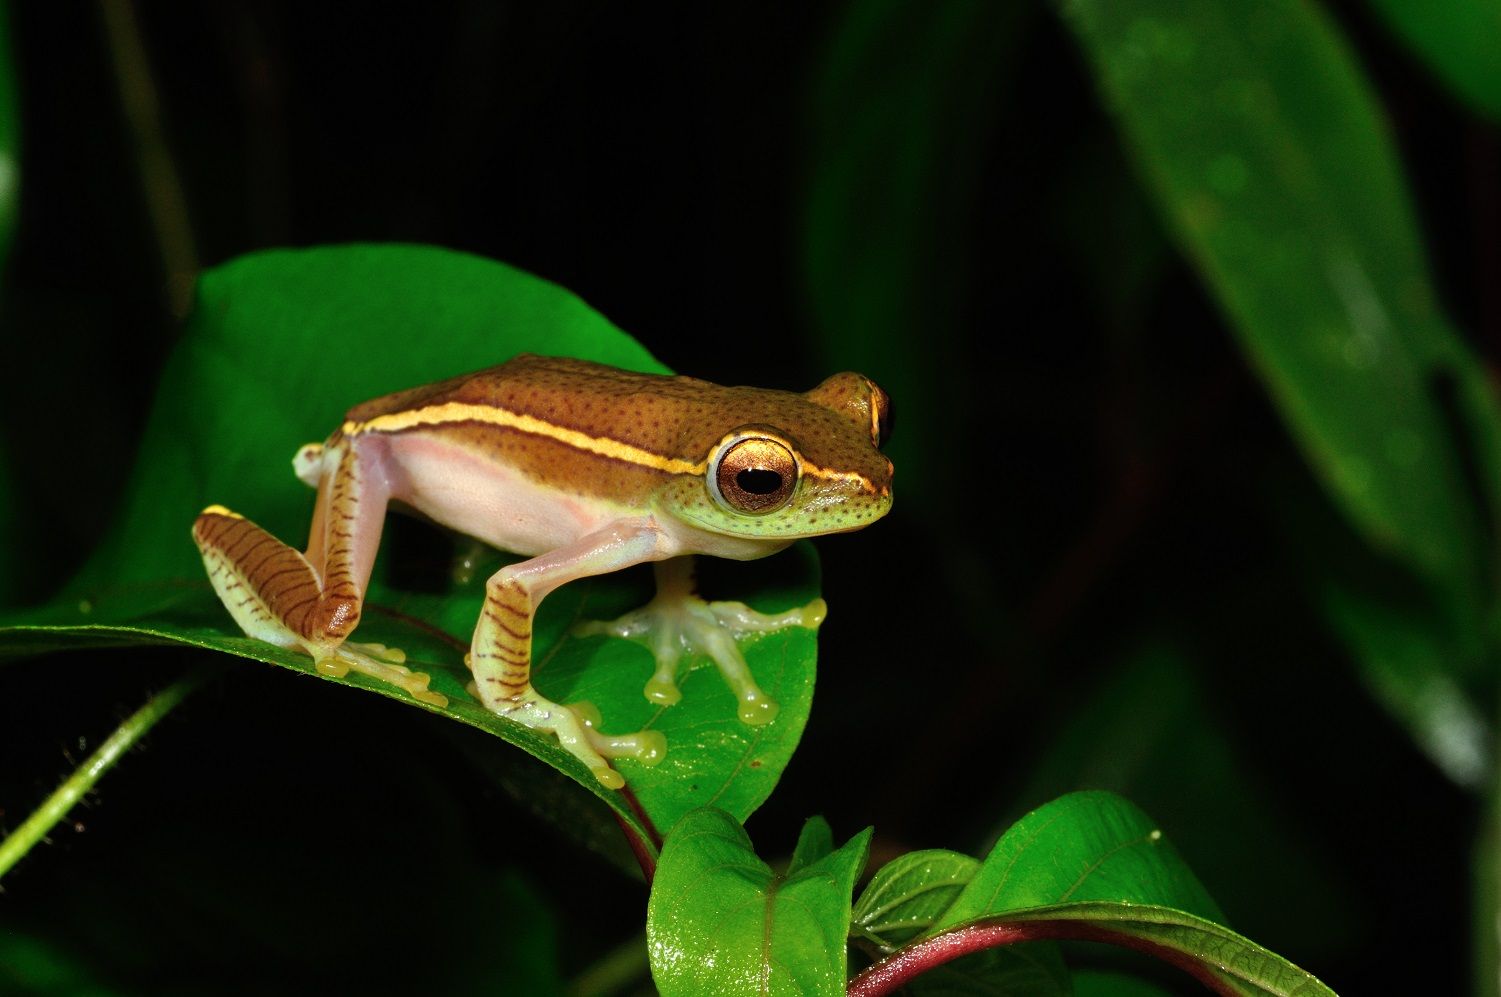 After it was discovered in 1883, the small gliding frog was lost to science, until it was rediscovered in the forests of Madikeri in the late 1990s.  The smallest of the gliding frogs found in the Western Ghats, it measures up to 4 cm.